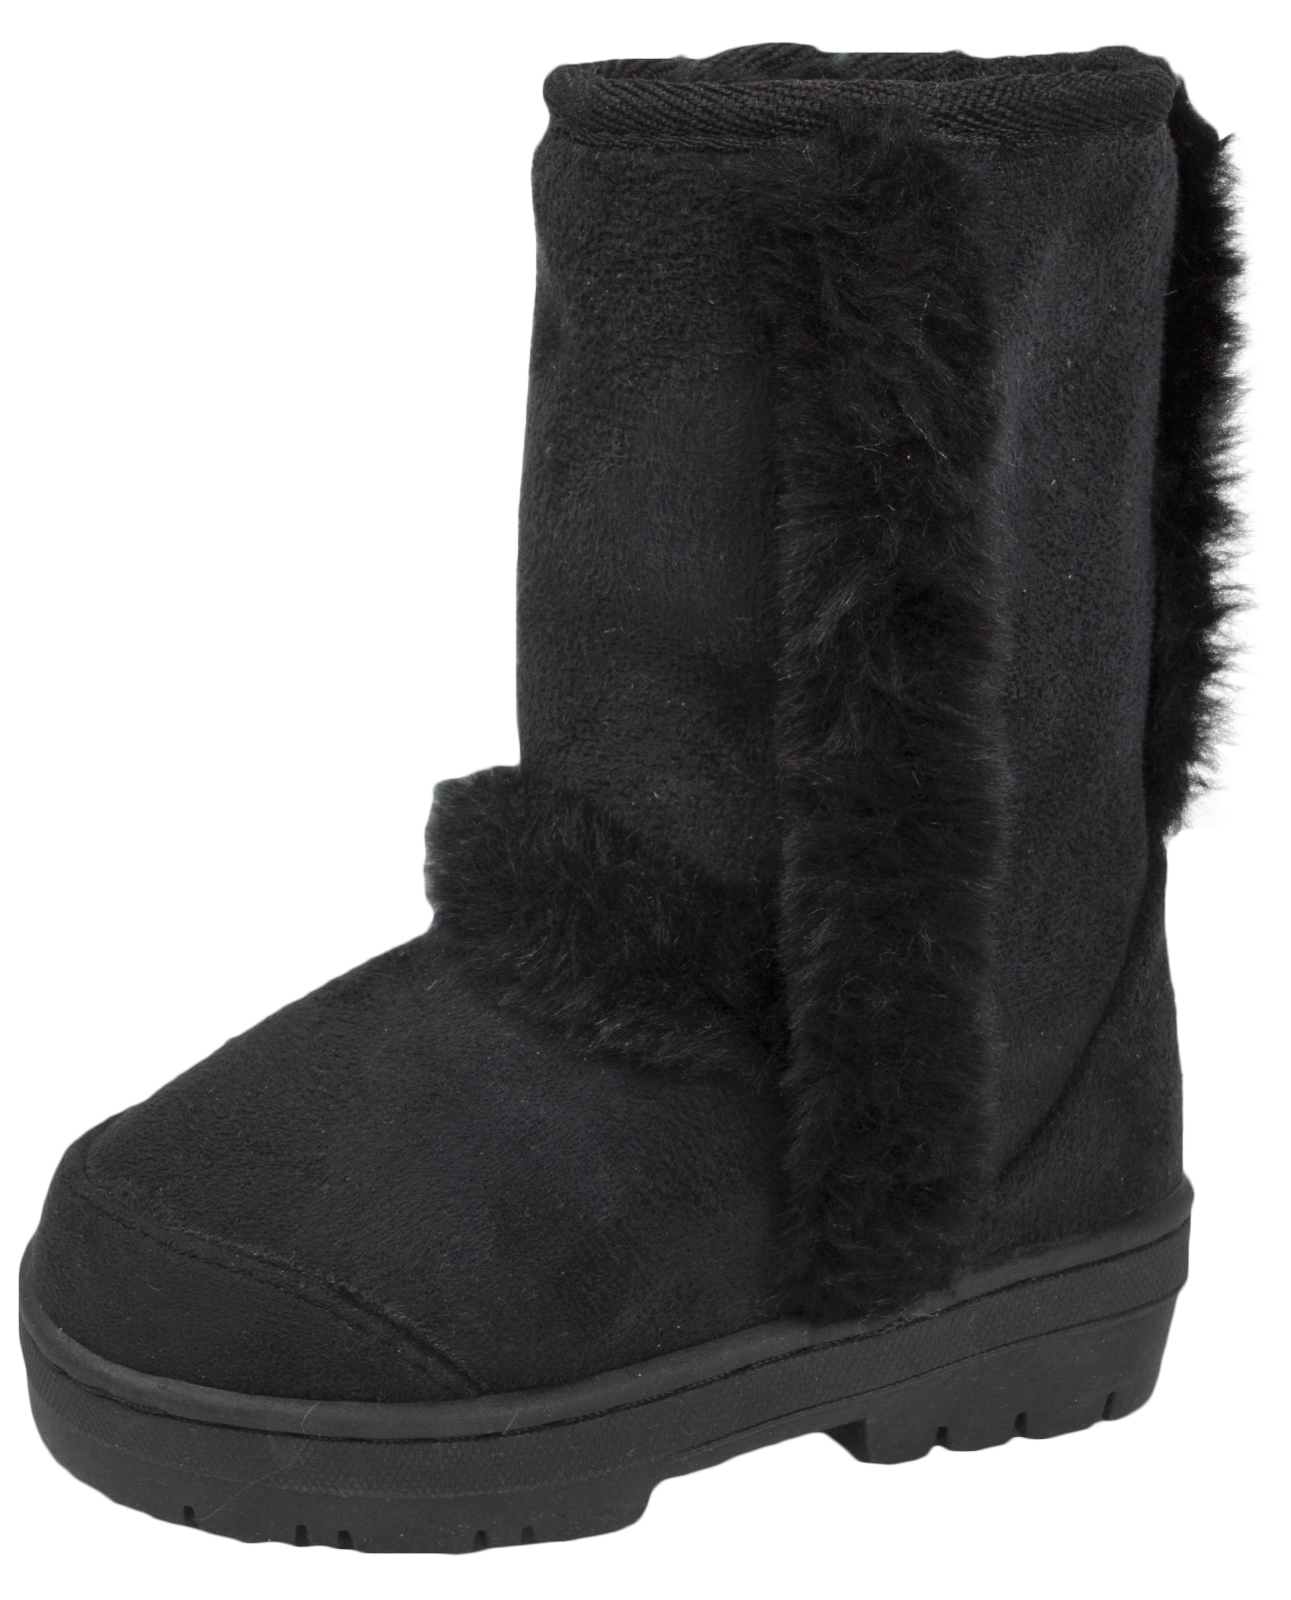 Girls Fur Boots Faux Sheepskin Fur Lined Mid Calf Flat Childrens Kids Warm Boots